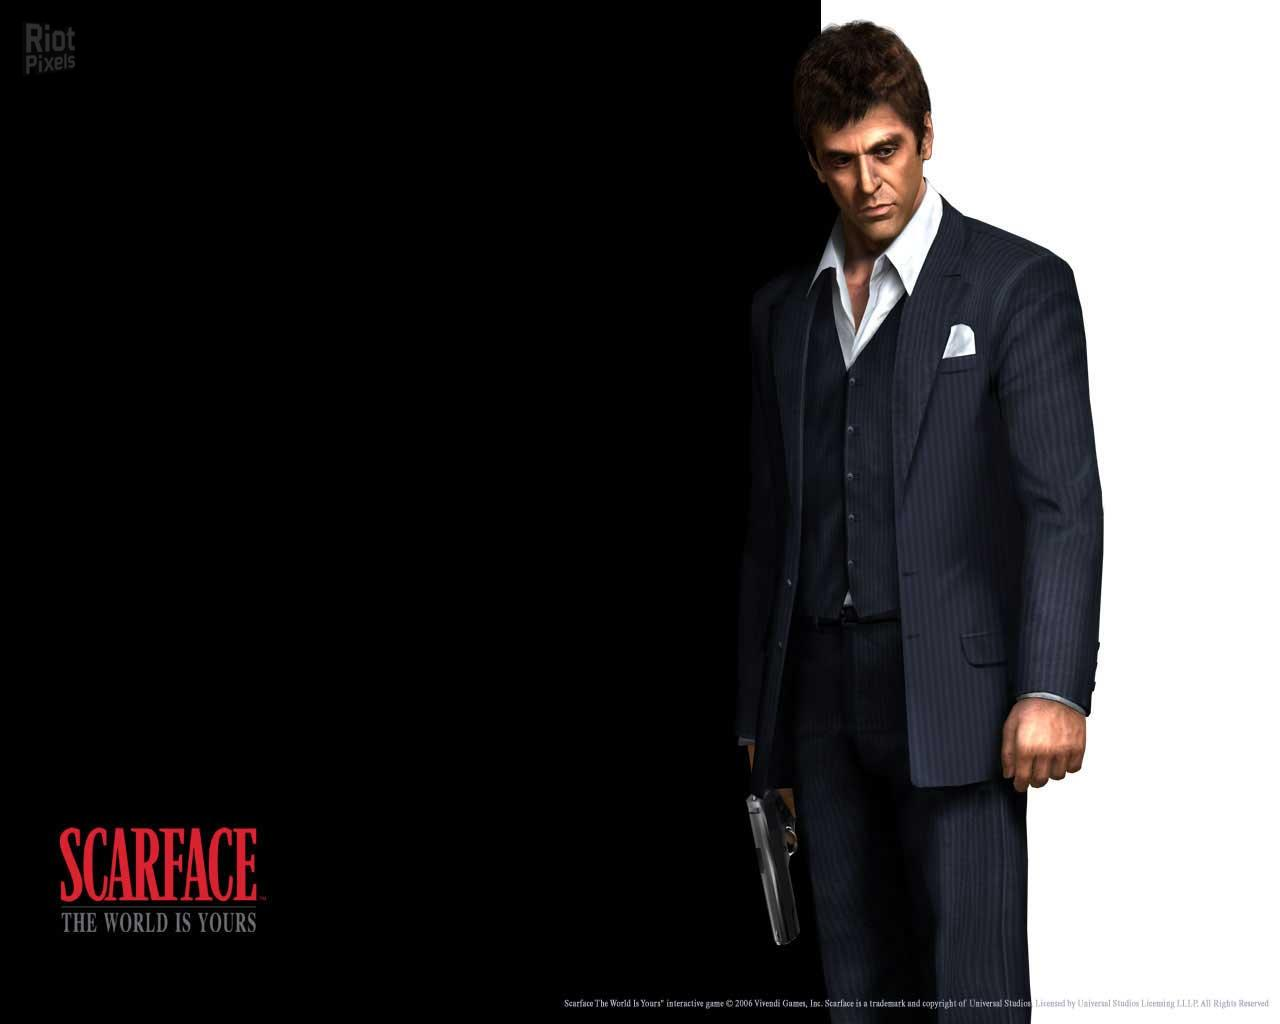 Scarface The World Is Yours Game Wallpapers At Riot Pixels Images